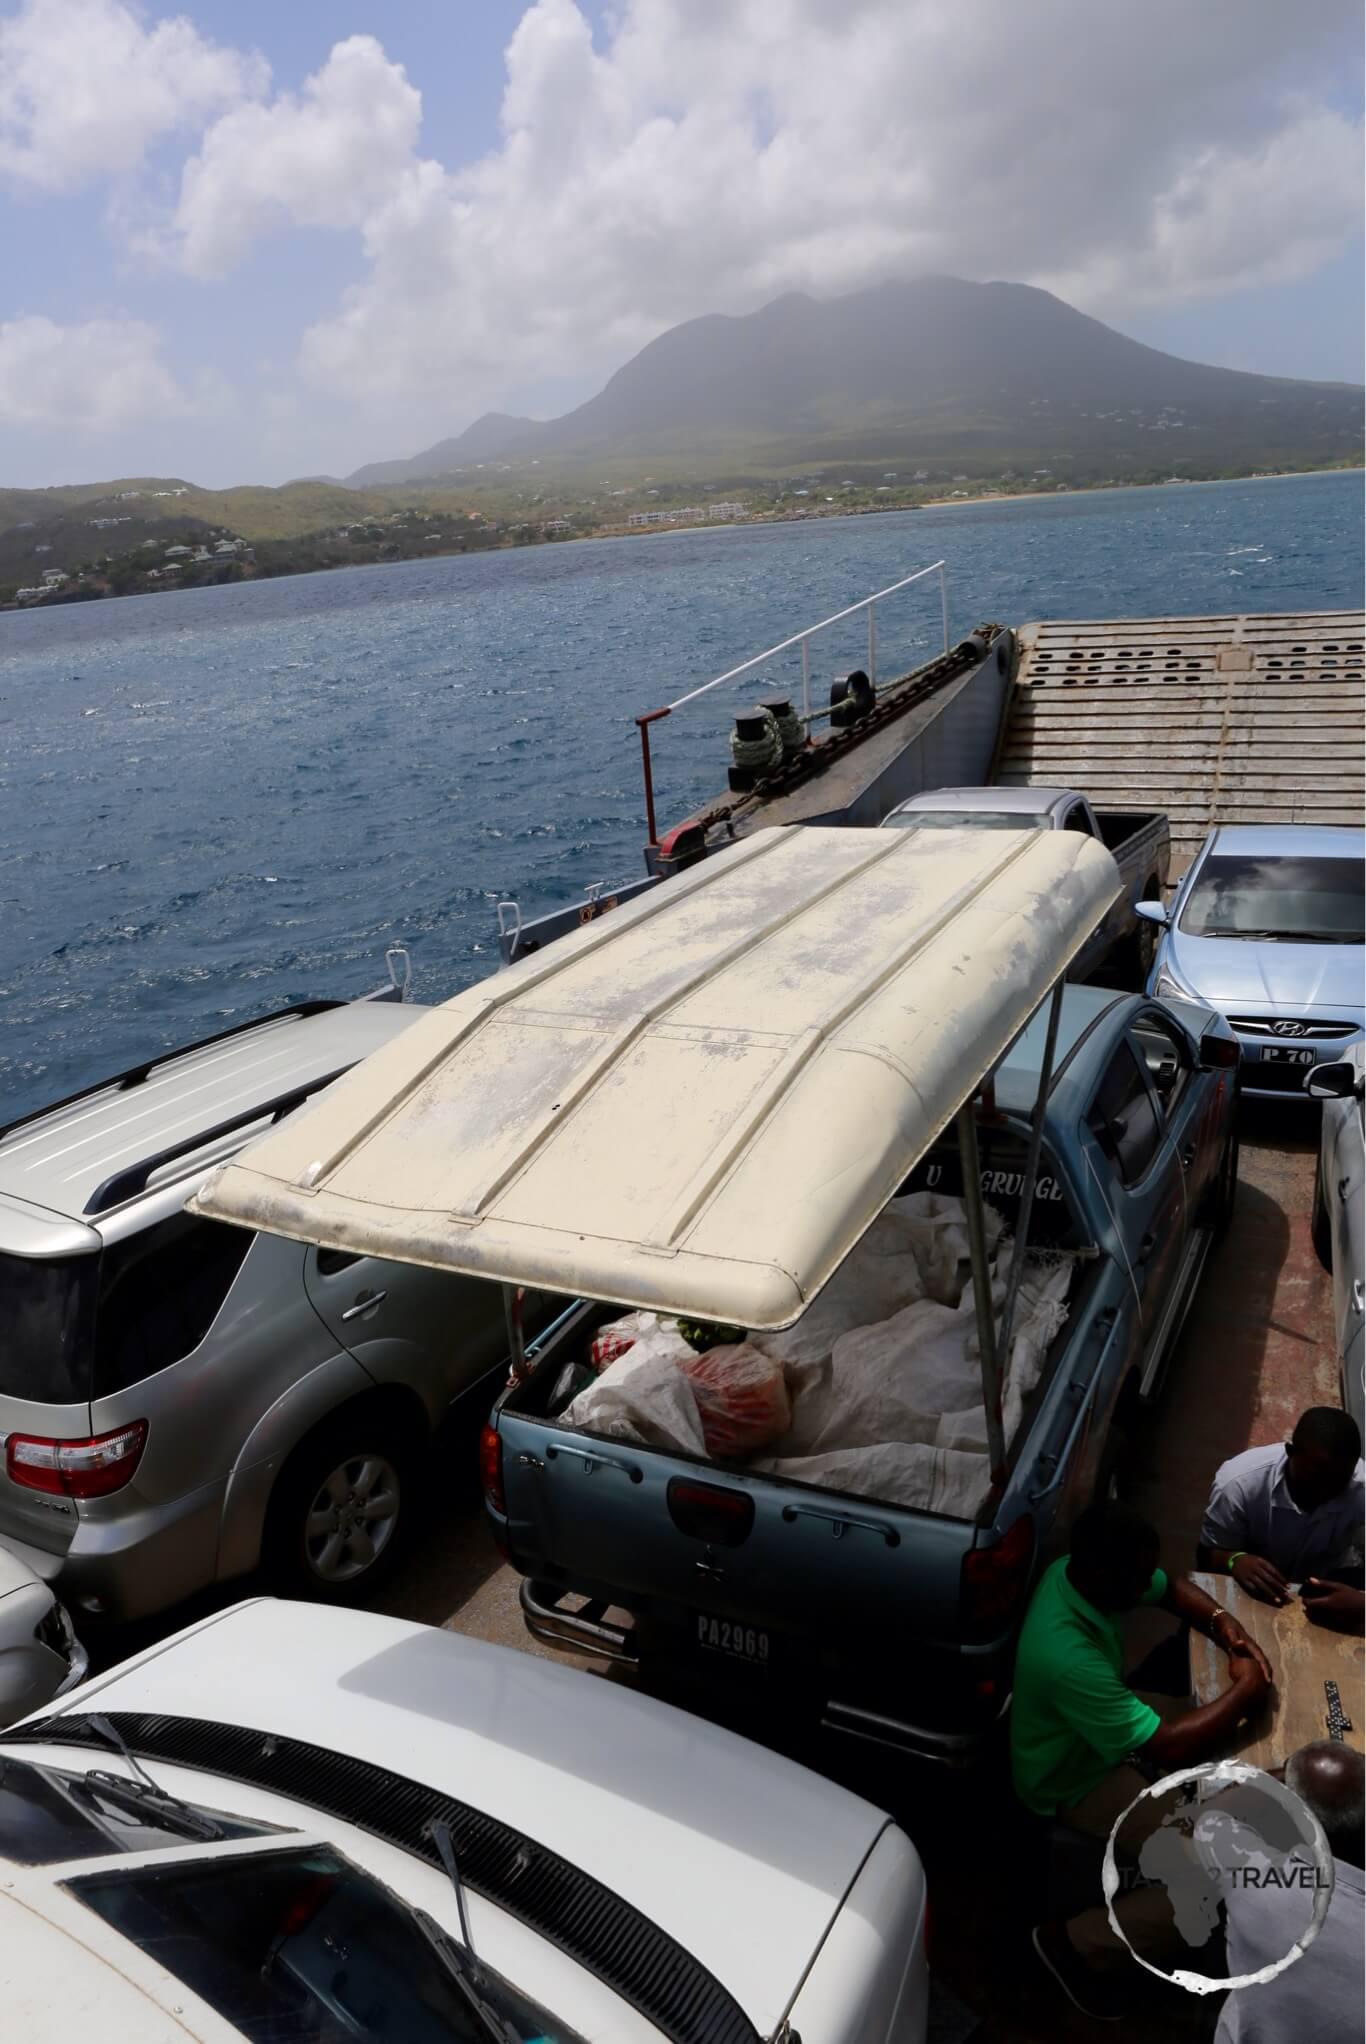 The Seabridge ferry from St. Kitts to Nevis with Nevis Peak in the background.